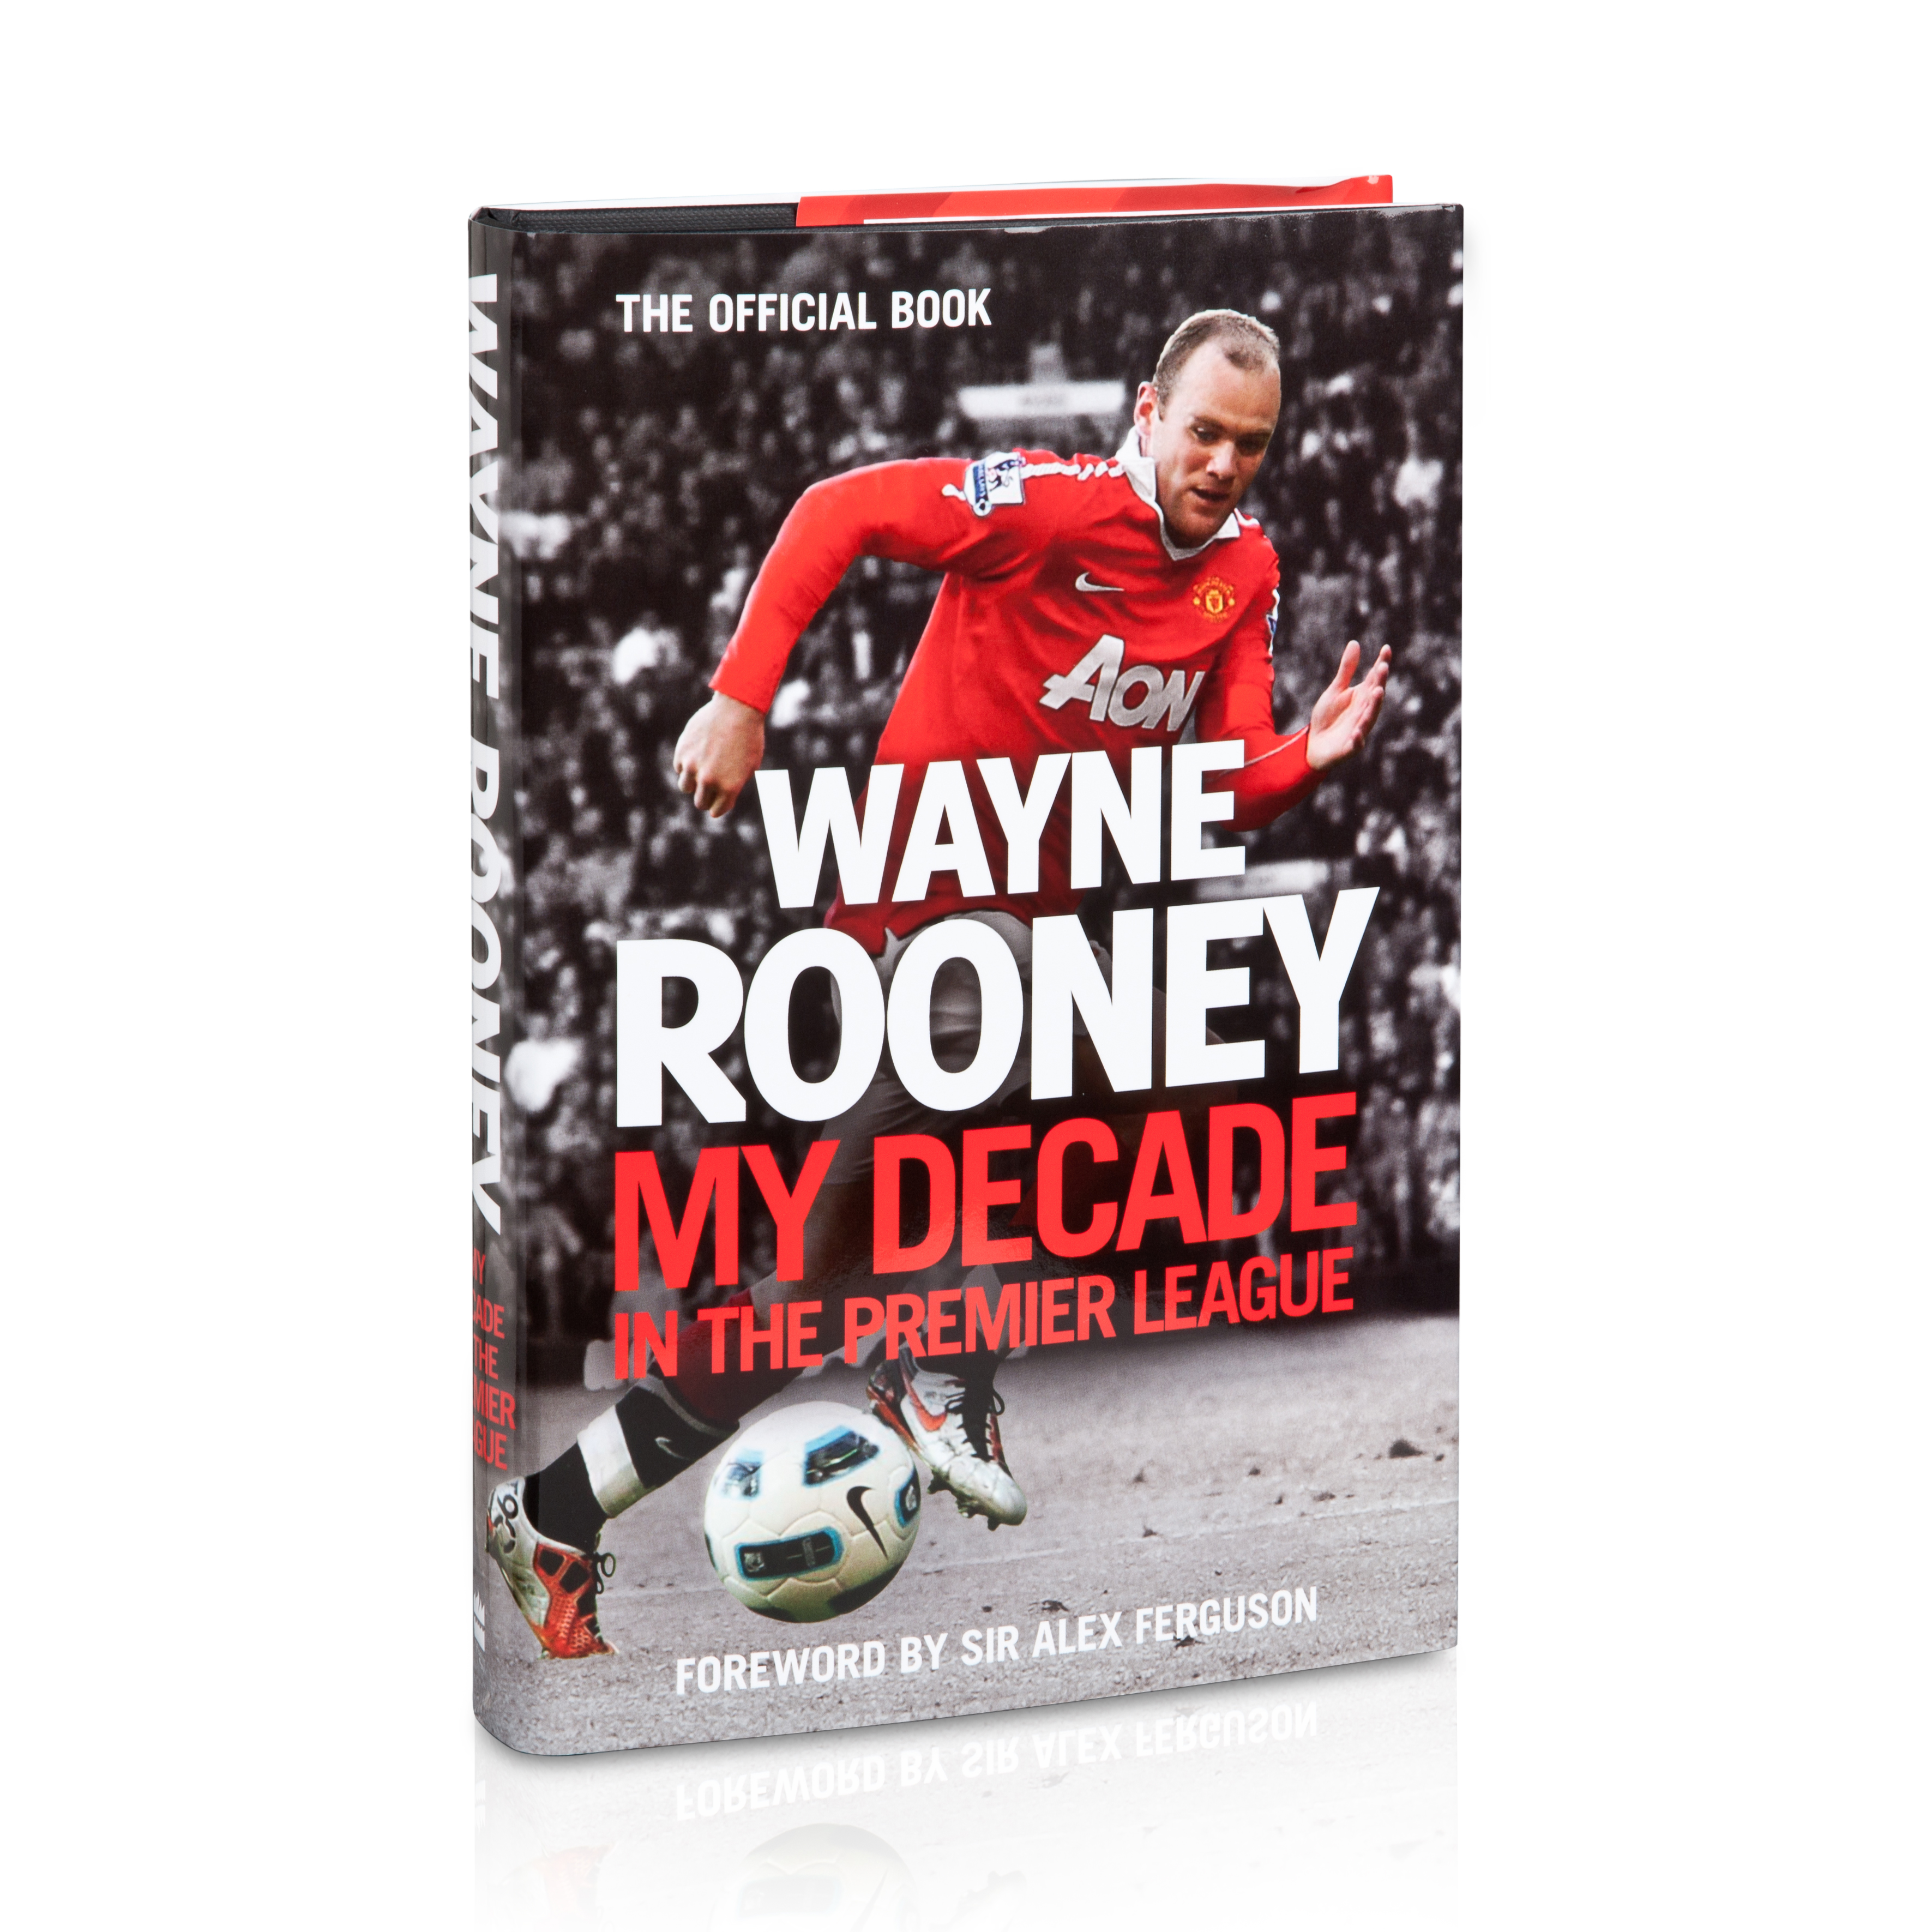 Manchester United Wayne Rooney: My Decade in the Premier League Hardback Book